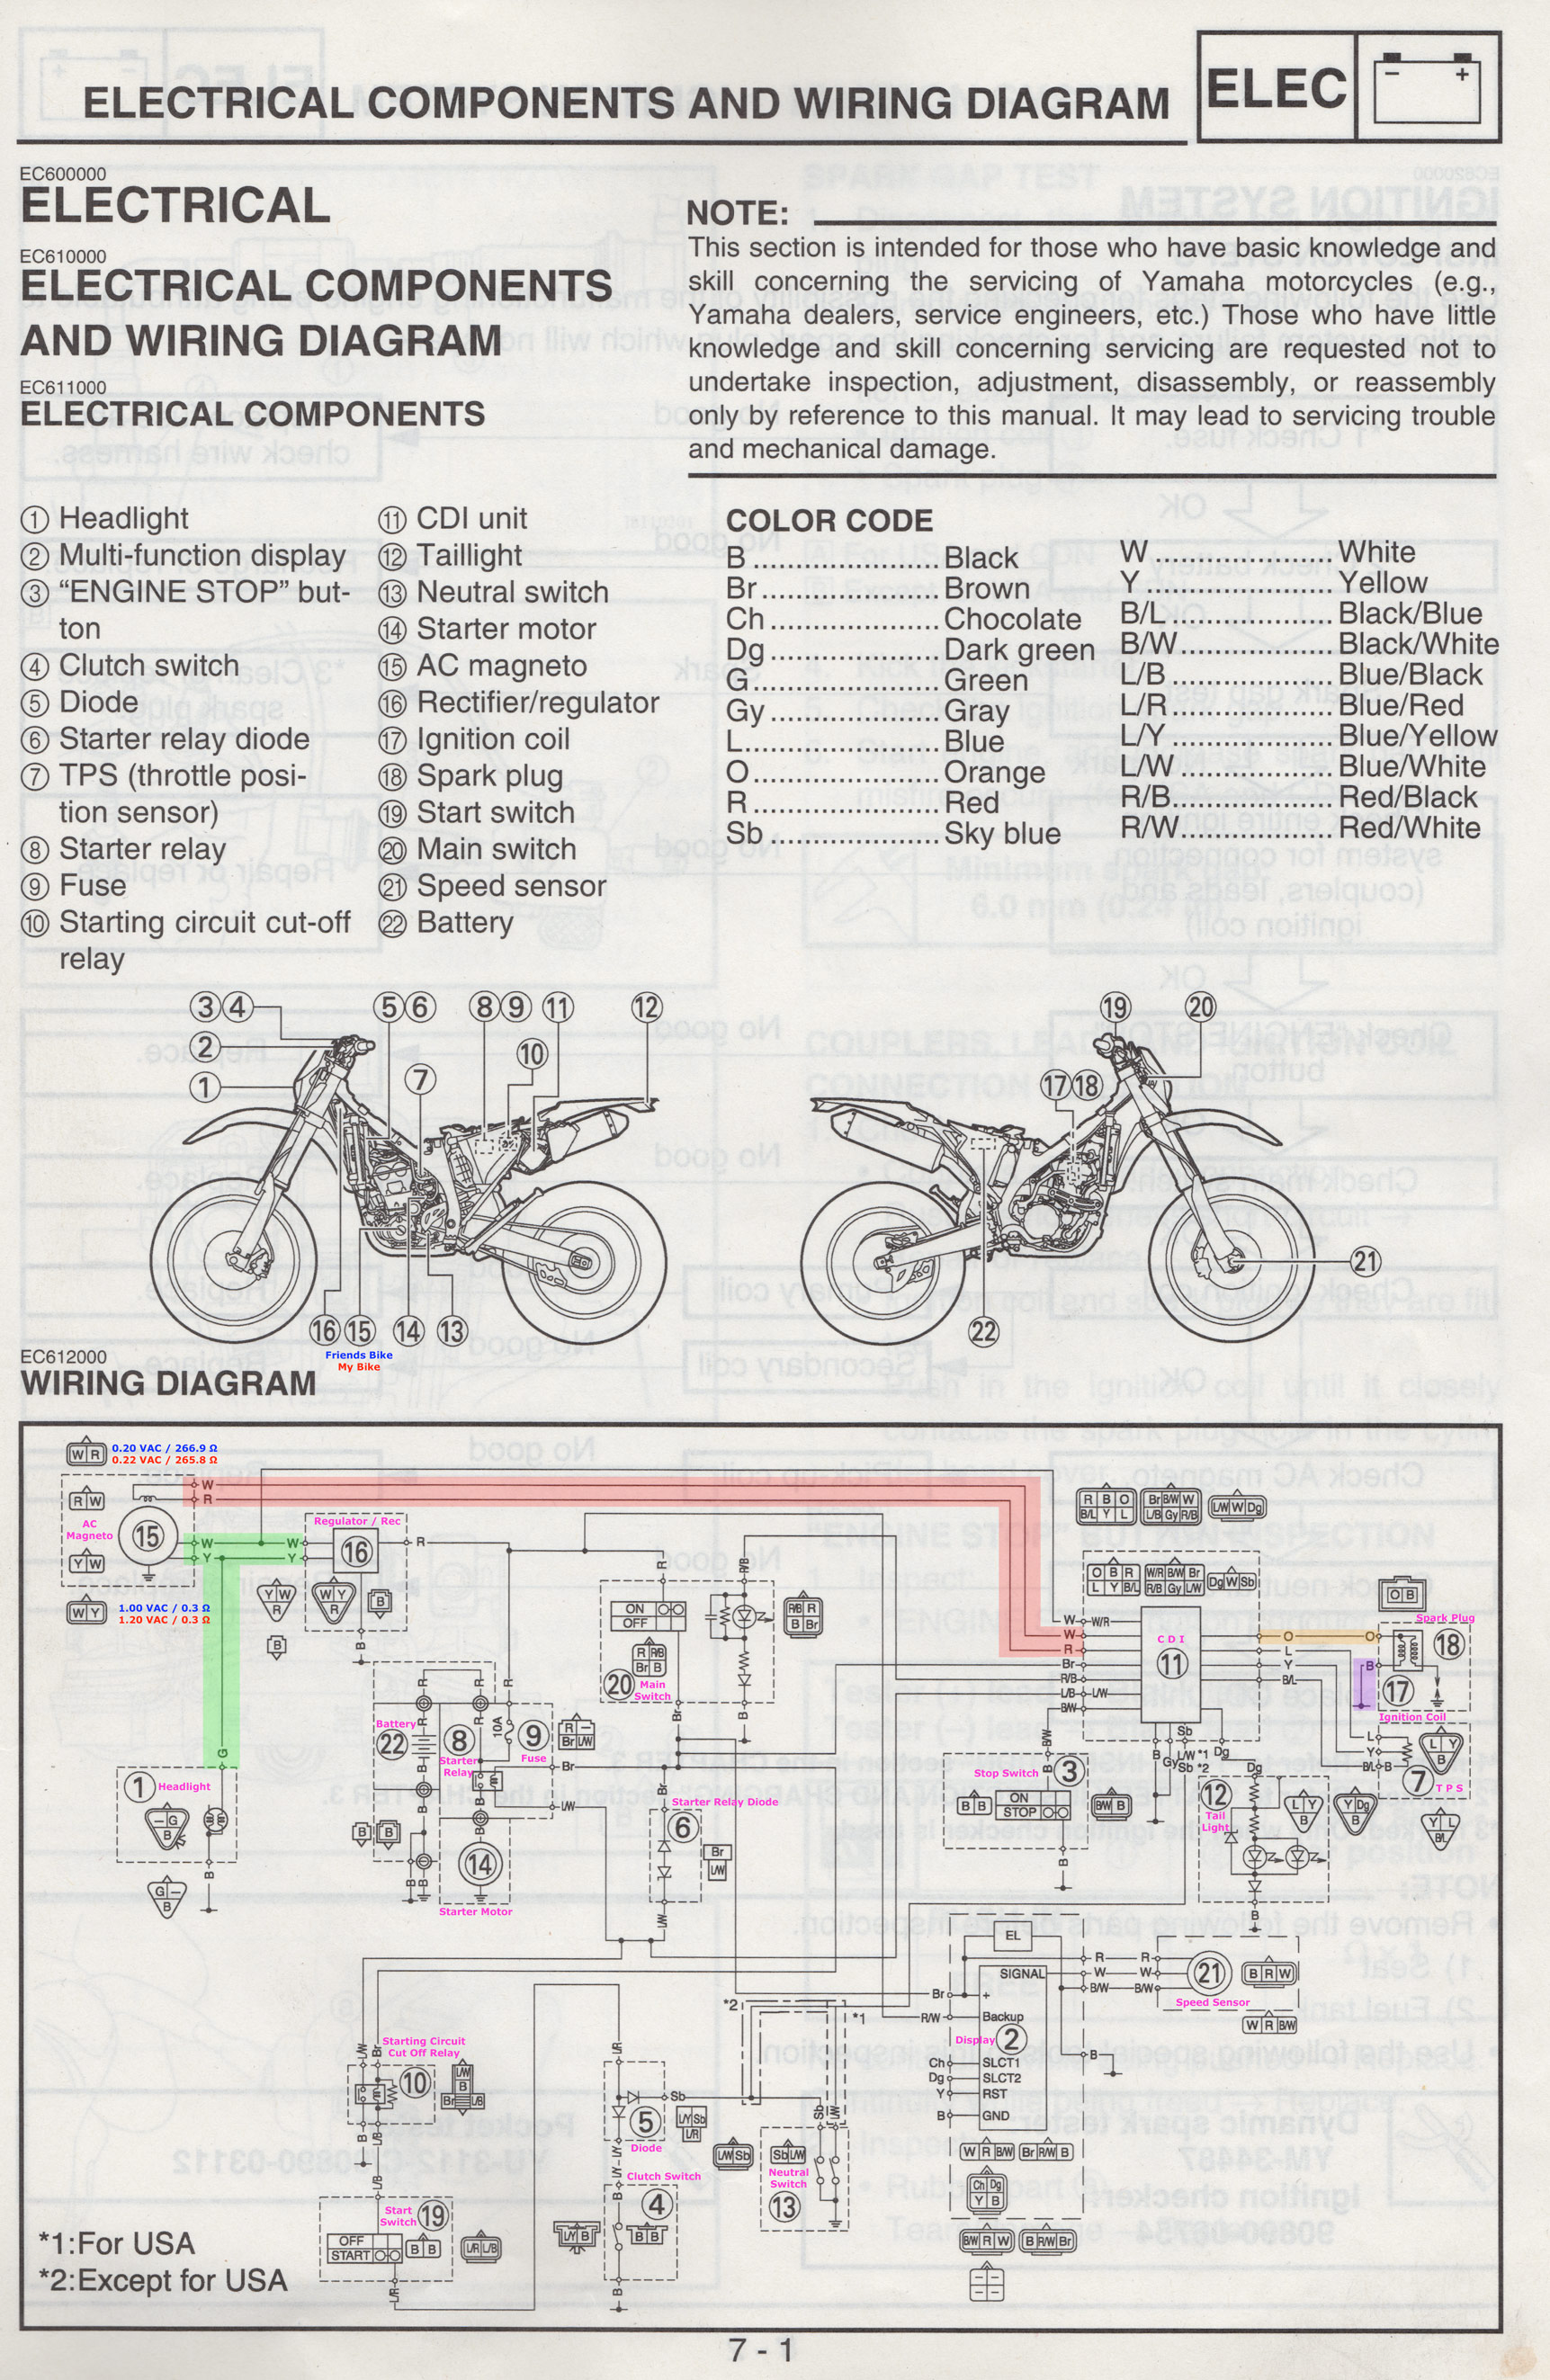 Wr450f Wiring Harness 21 Diagram Images Diagrams Fzx700 Wire02 Advanced Electrical Help Wr450 No Spark Page 2 Adventure Rider At Cita